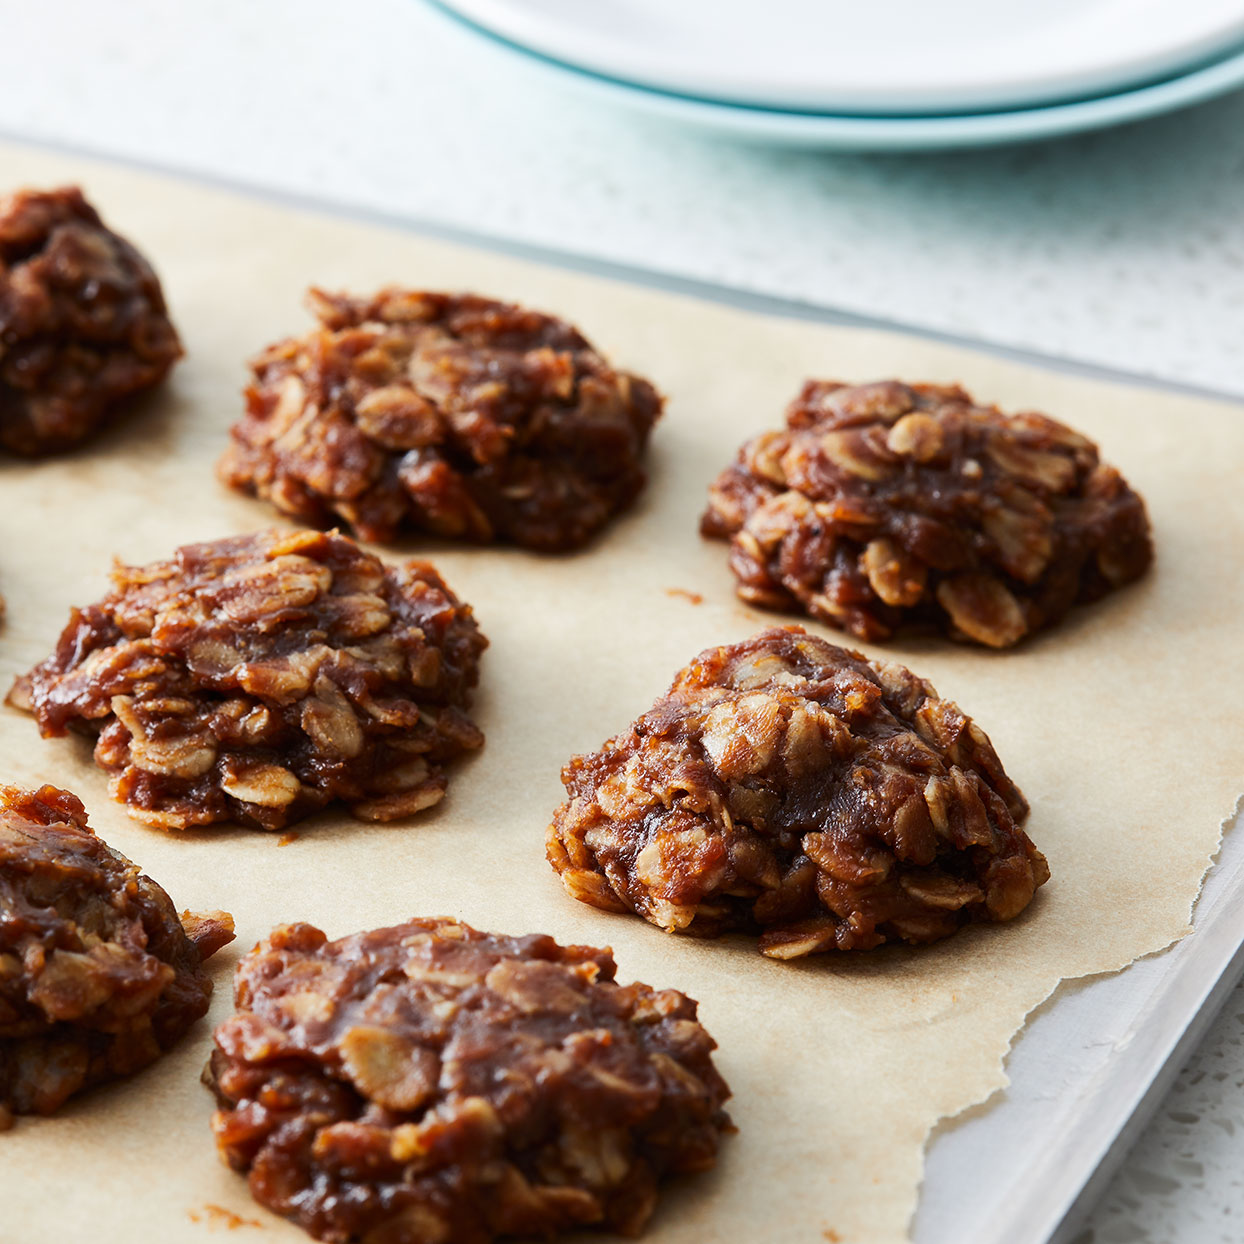 Creamy natural peanut butter and chocolate team up in these easy cookies--no baking required! Whip up a batch for after-school snacks, dessert or anytime your sweet tooth comes calling. Source: EatingWell.com, September 2020